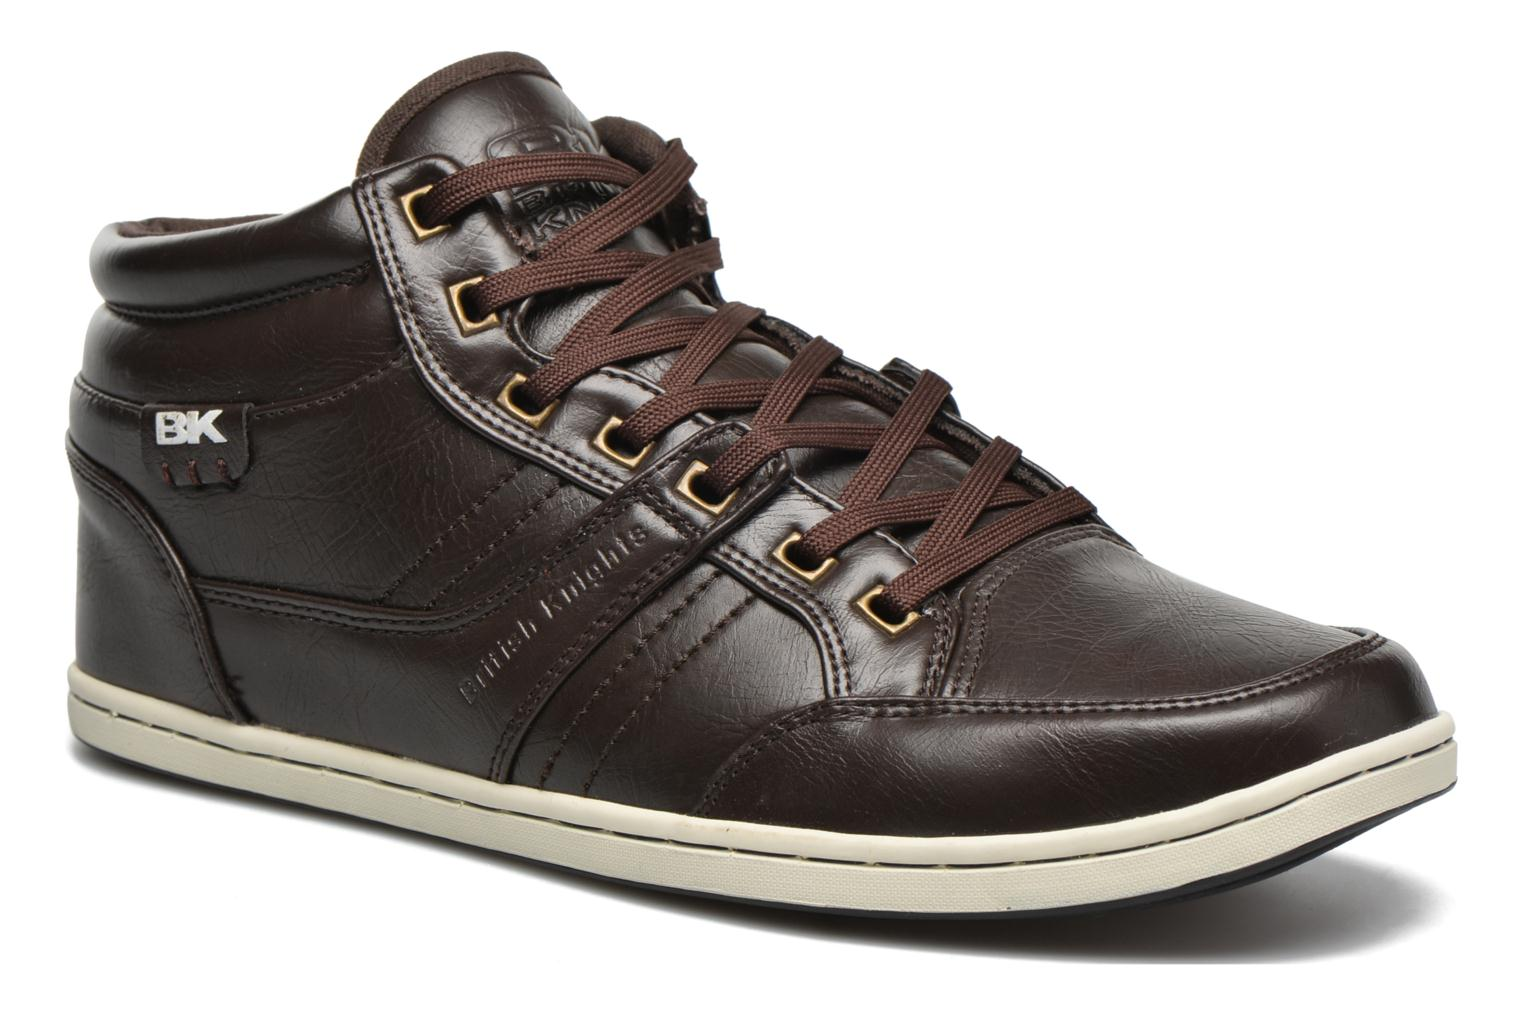 Sneakers Re-style Mid by British Knights